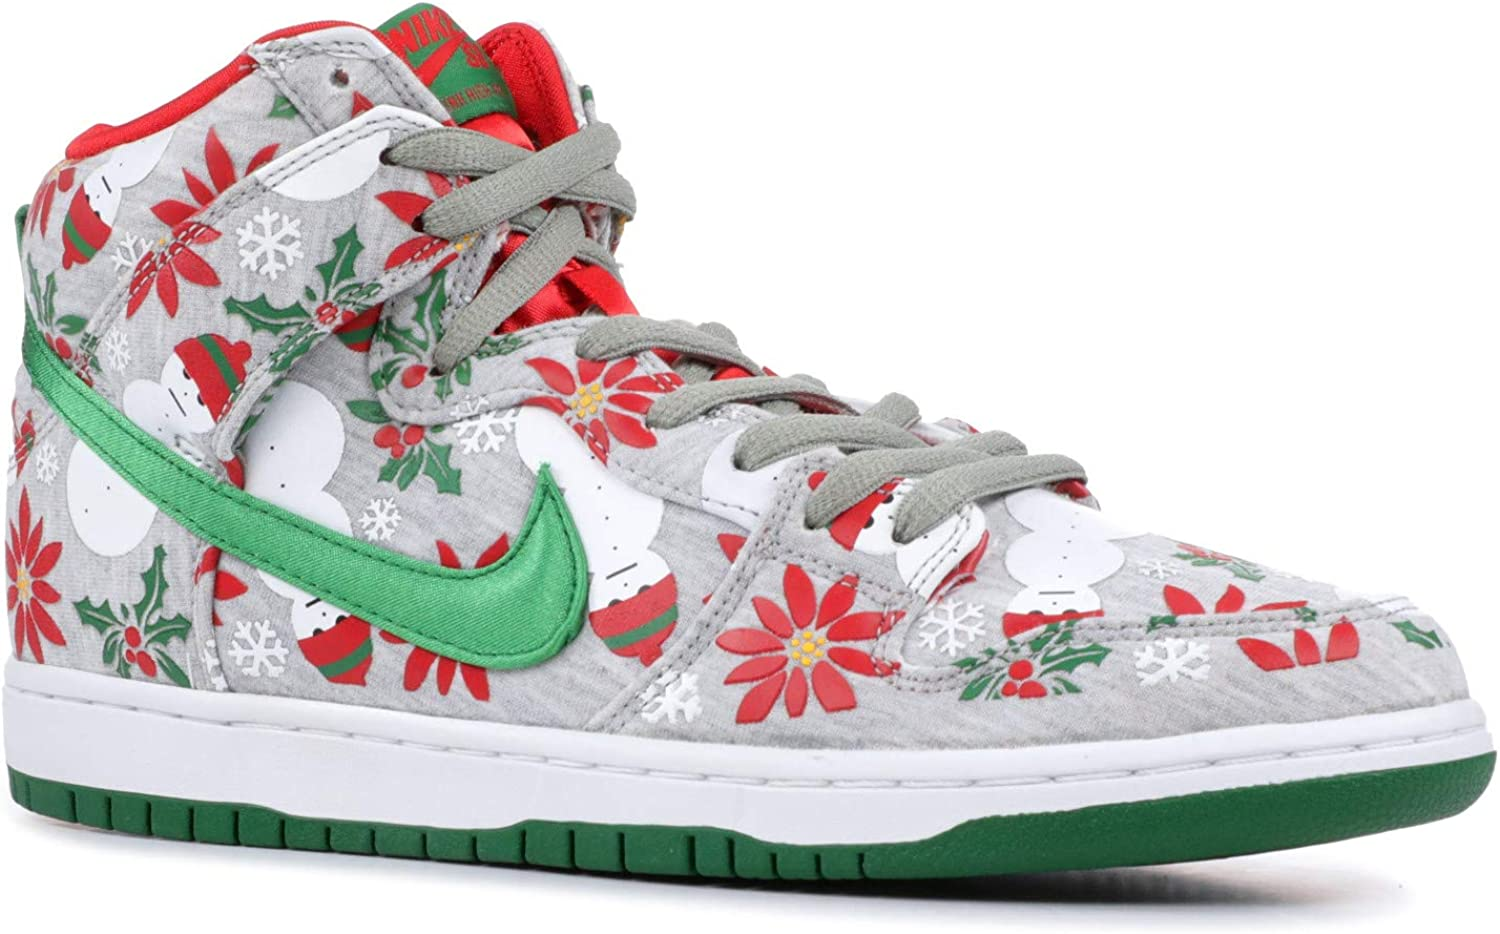 secretamente Email Embajada  Amazon.com | Nike Dunk High SB PRM Ugly Christmas Sweater (635525-036) |  Skateboarding